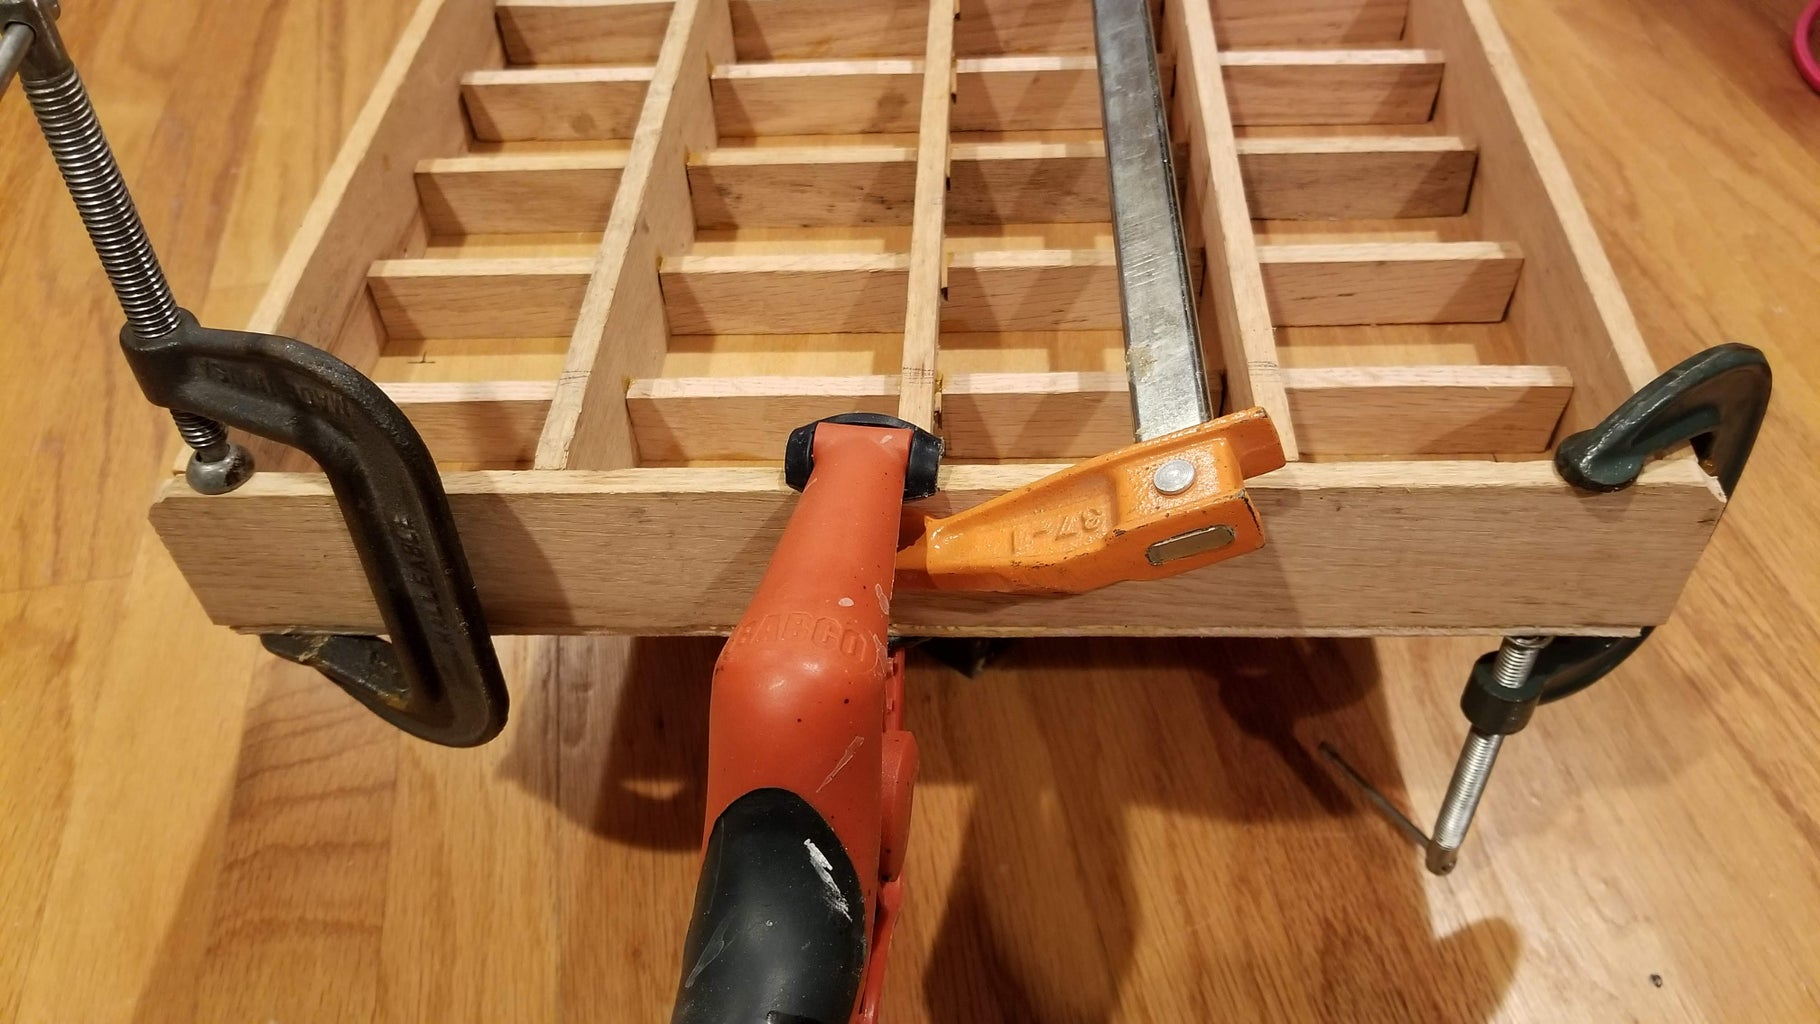 Attaching the Two Sides and Staining the Wood